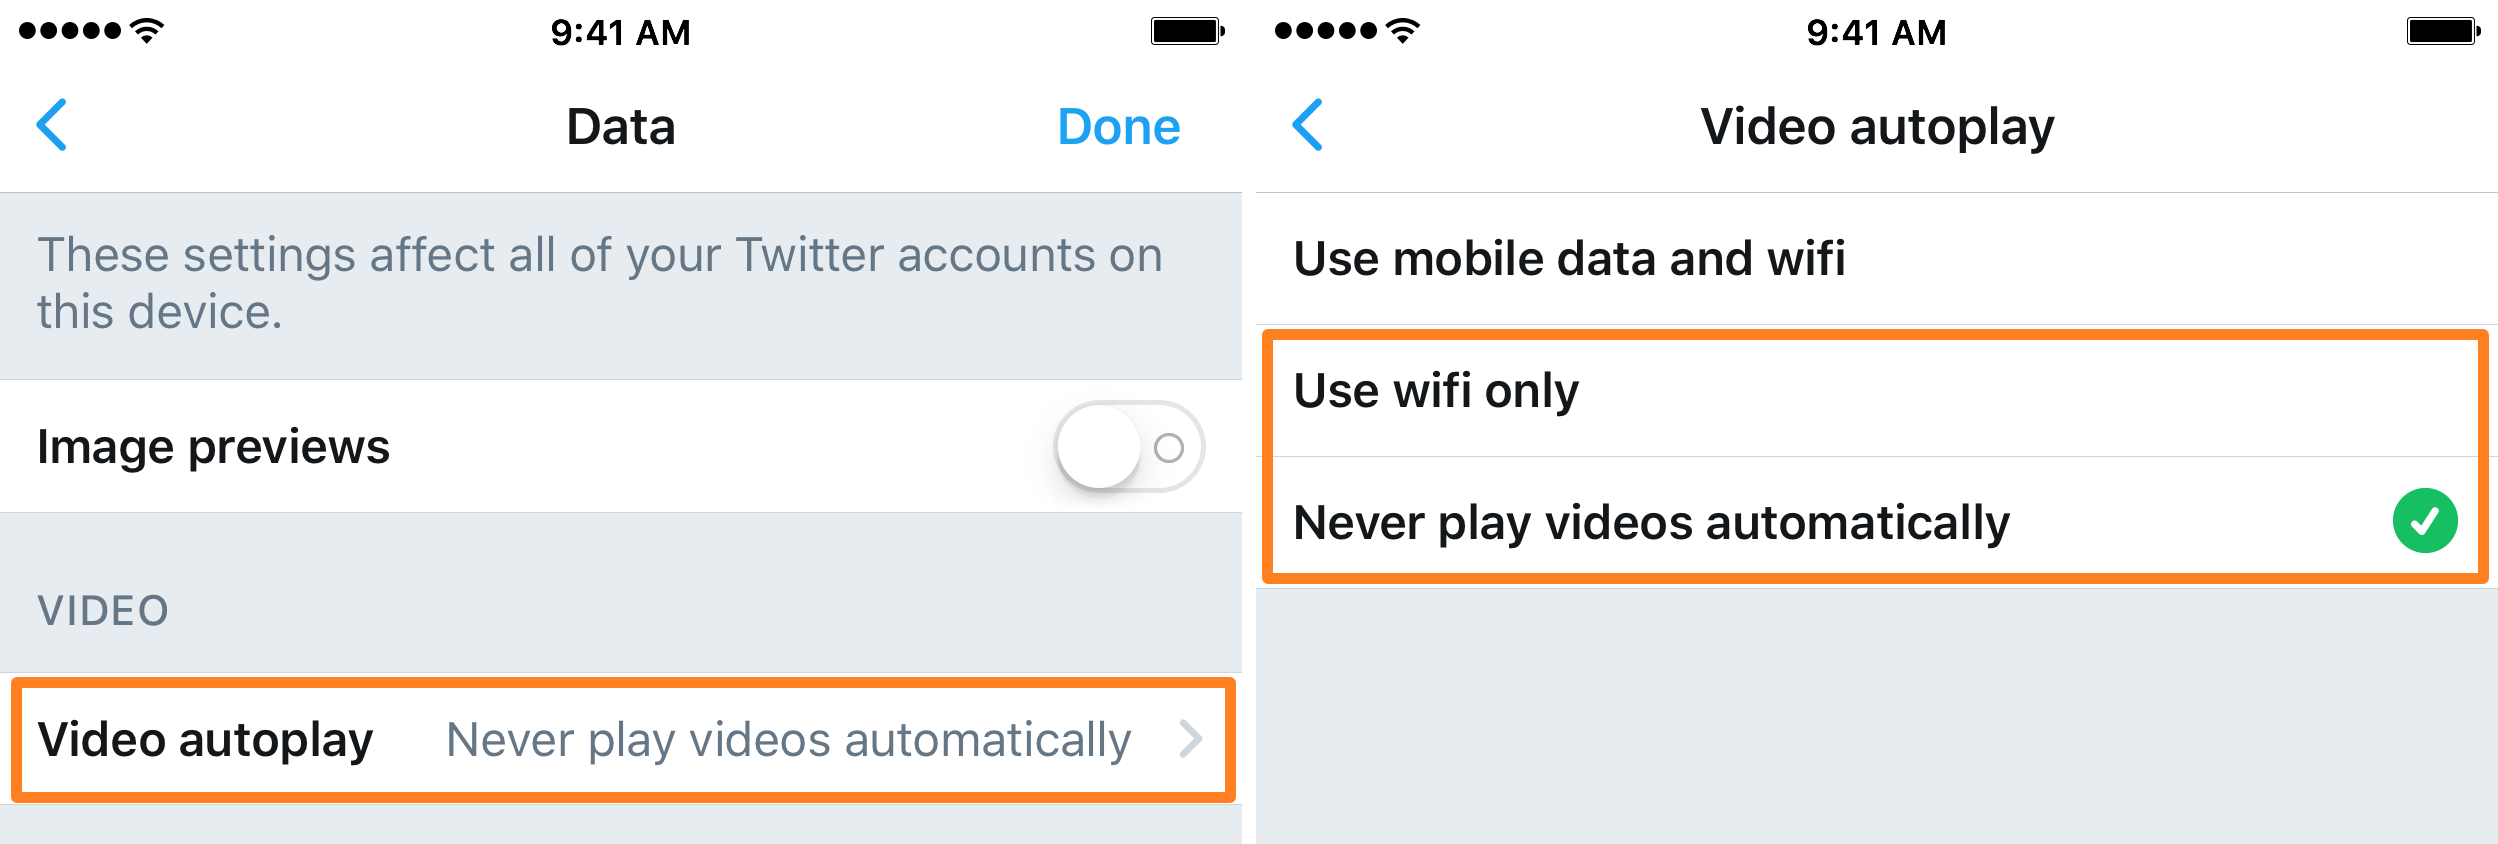 Twitter Settings Data 2